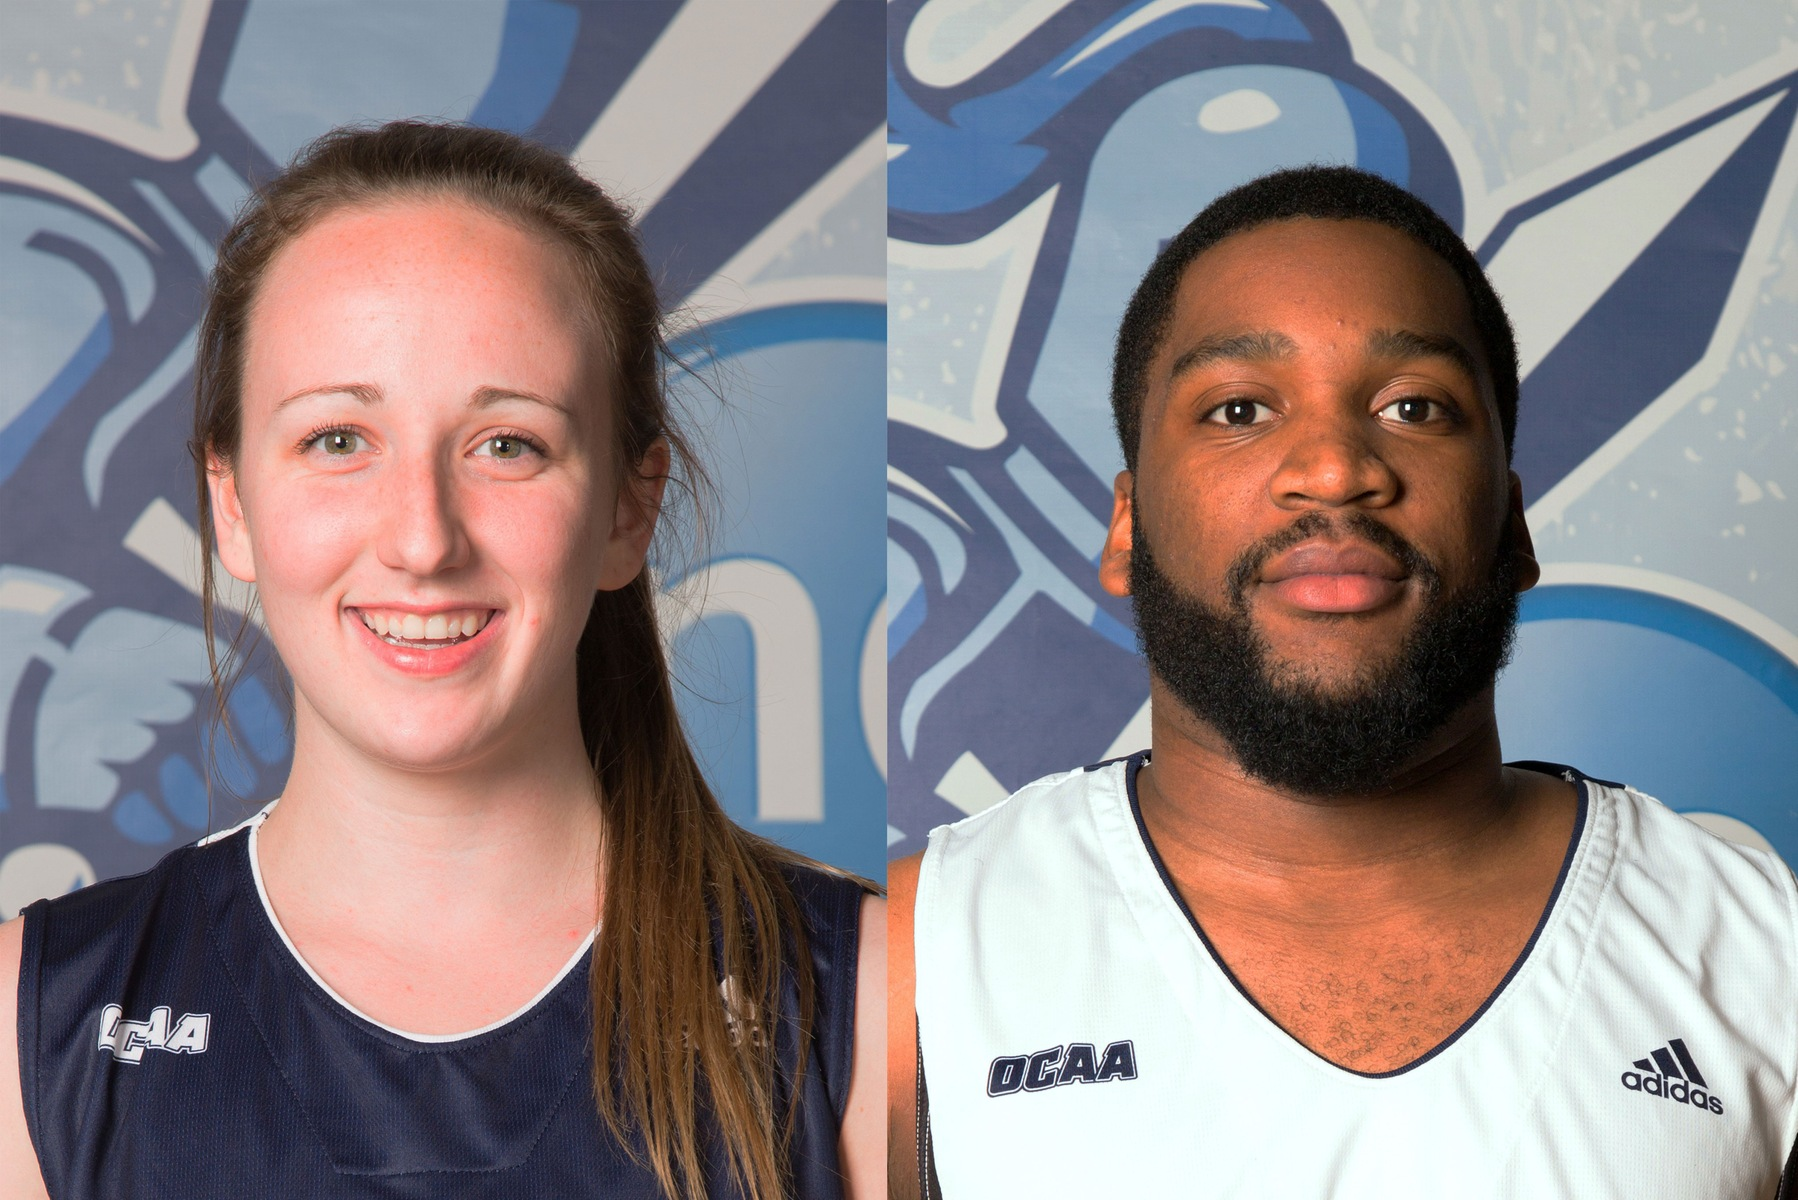 McCabe and Morrison named Athletes of the Week